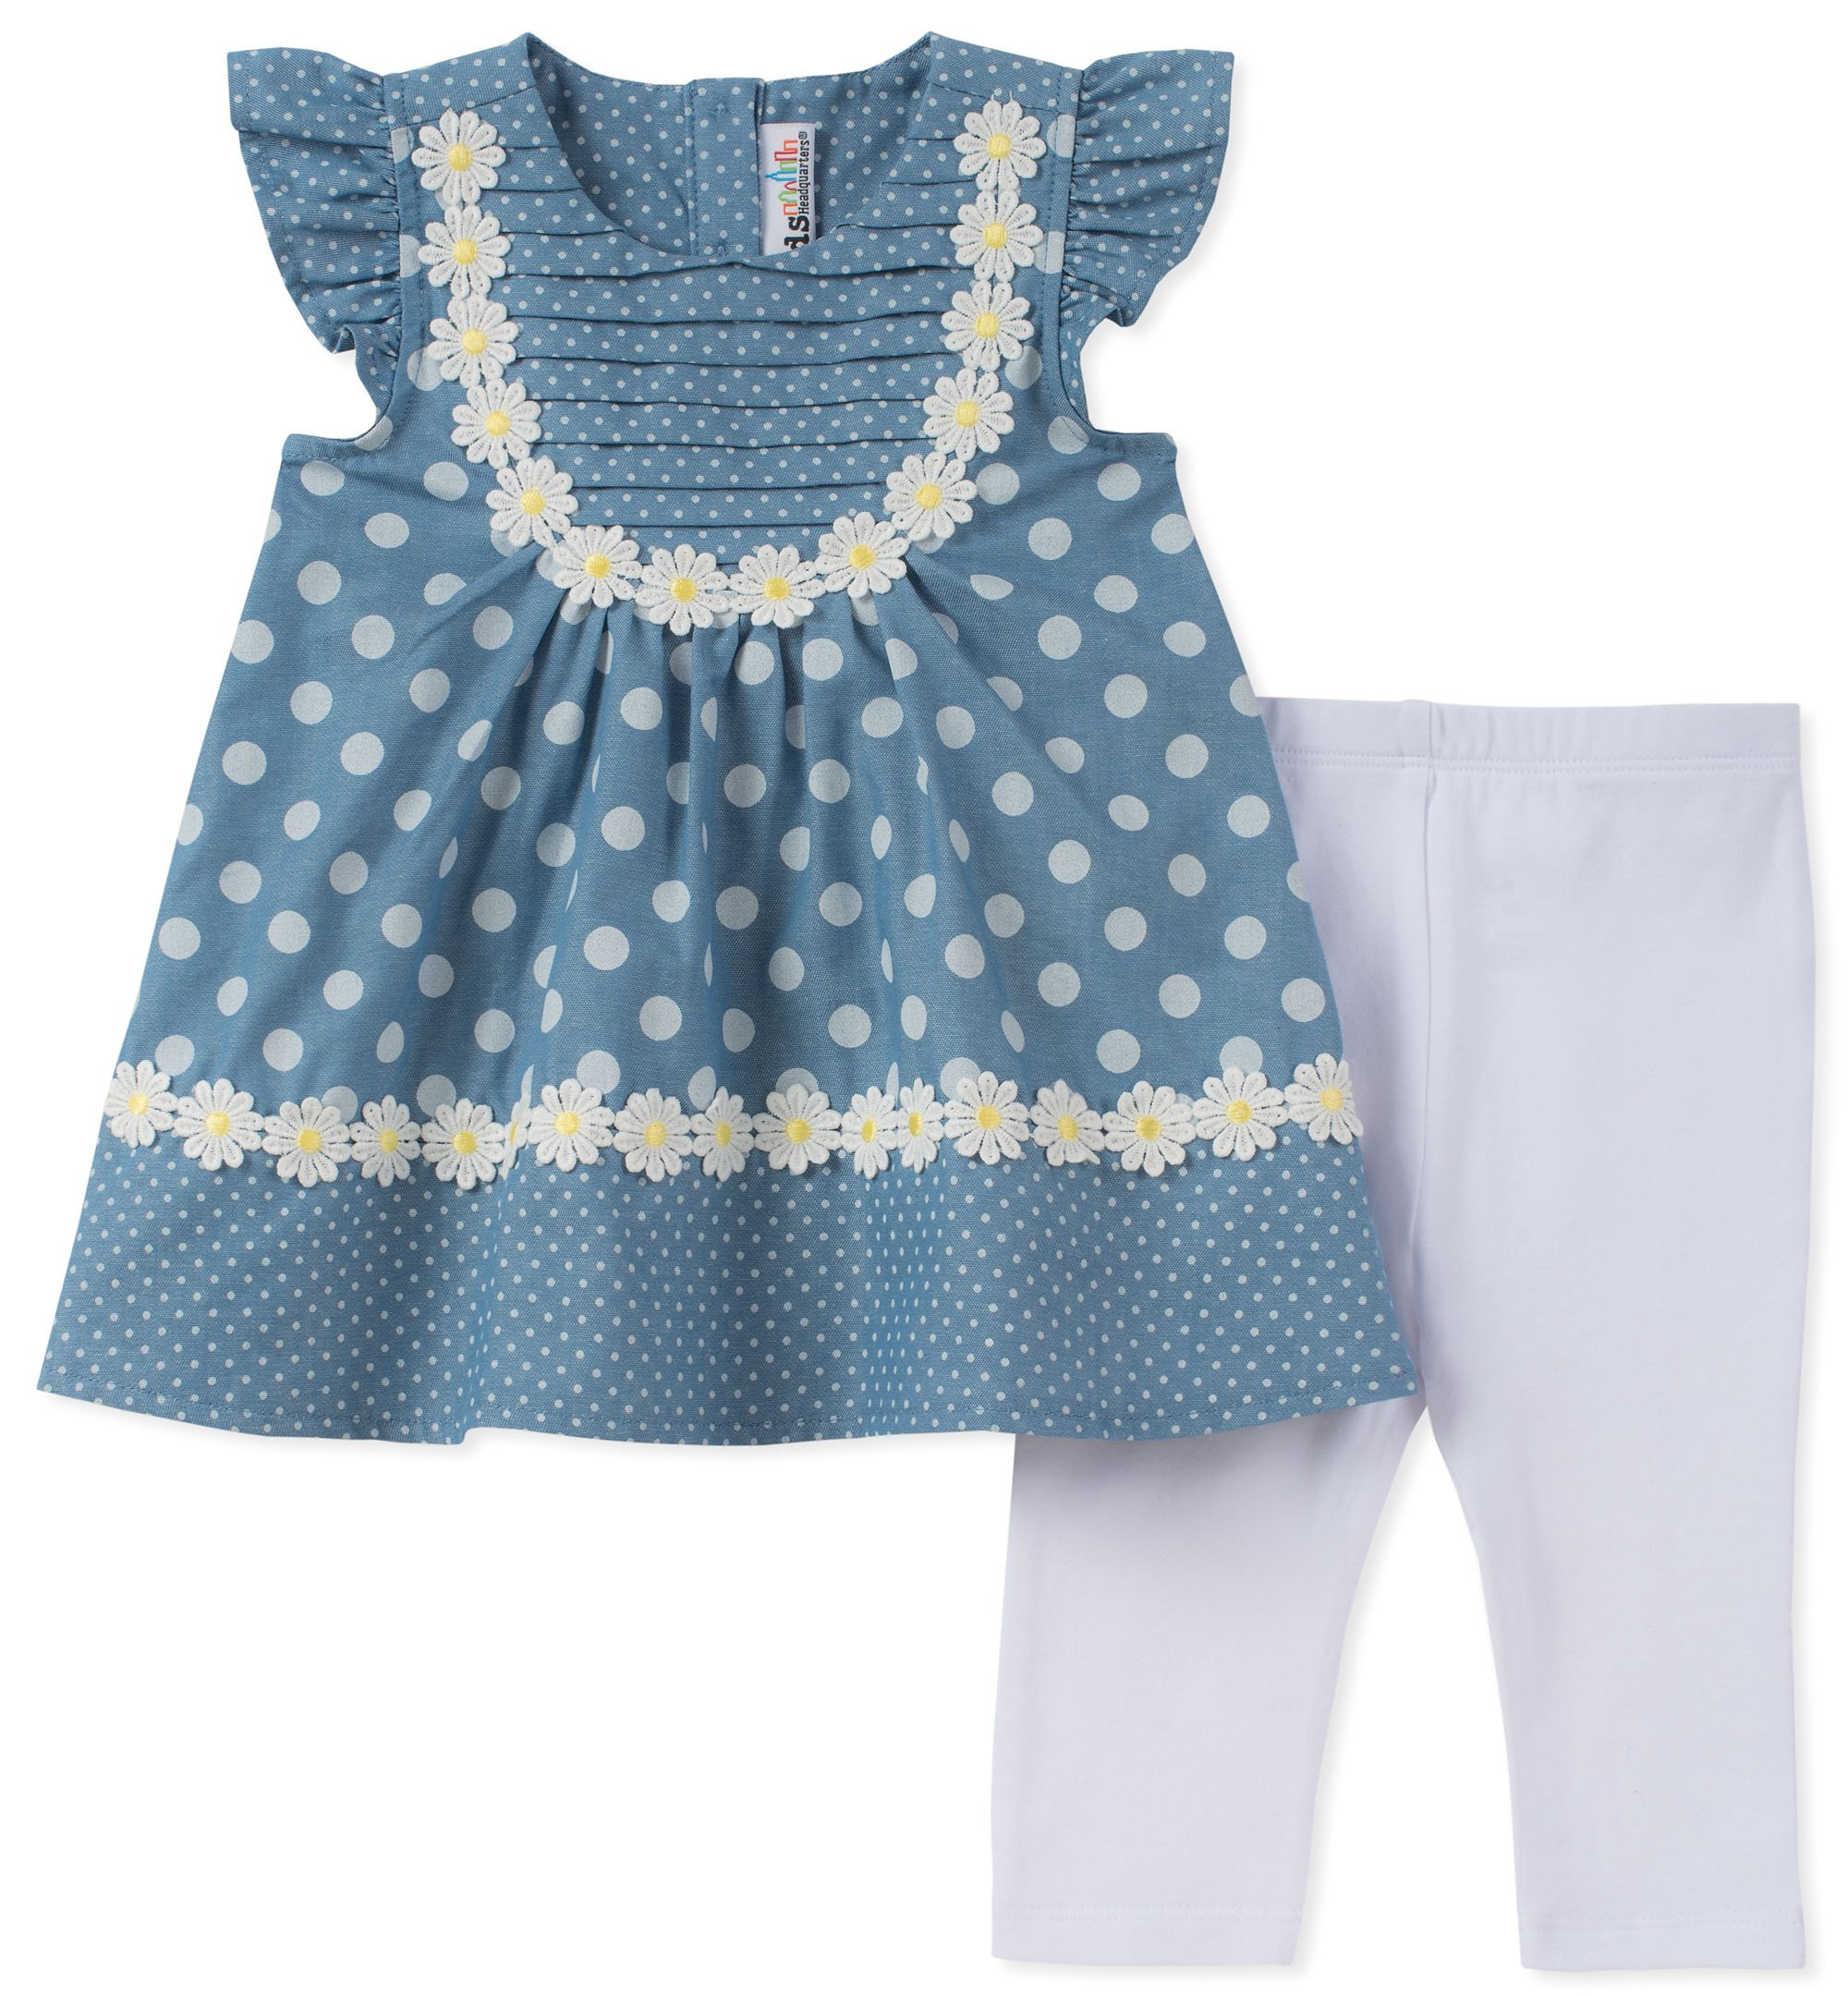 Kids Headquarters Girls' Toddler Tunic Set-Capsleeves, Blue/Yellow, 3T